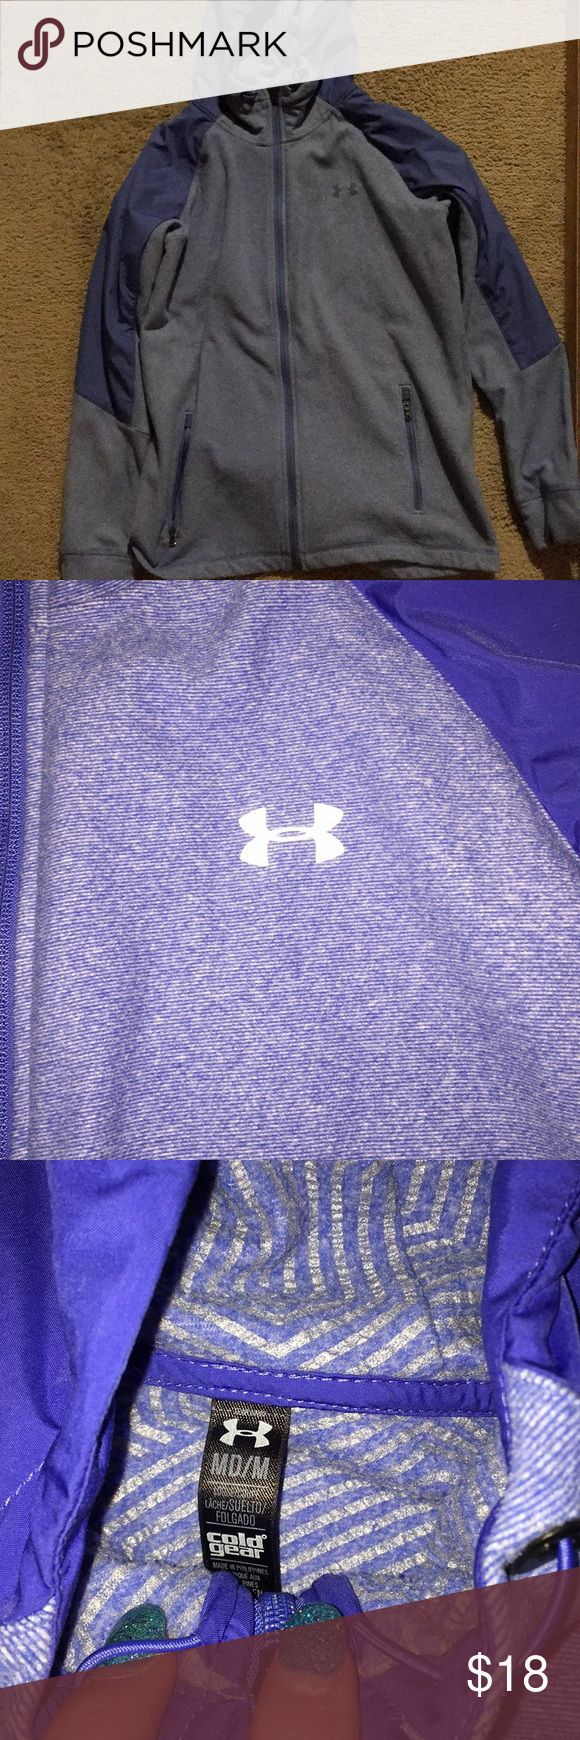 Under Armour Zip up Hoodie Powder blue UA zip up! Super comfy and even has waterproof material on hood, shoulders and part of the arms. The flash makes it look purple but it's actually blue! Pretty much brand new😁 Under Armour Tops Sweatshirts & Hoodies